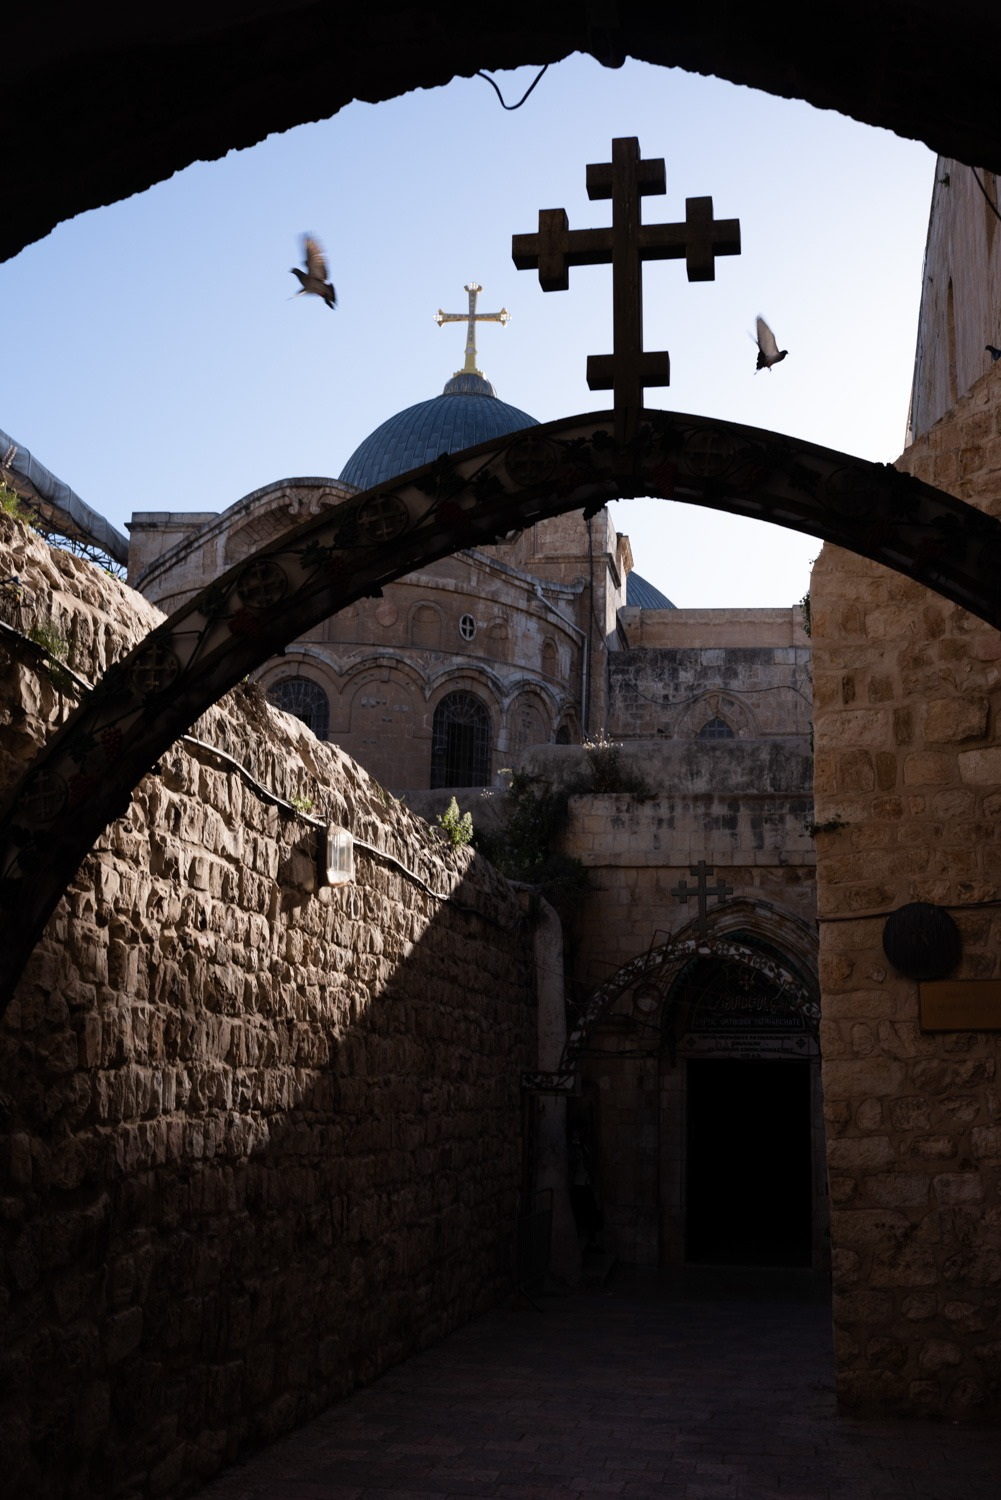 Church of the Holy Sepulchre - Cristian Geelen